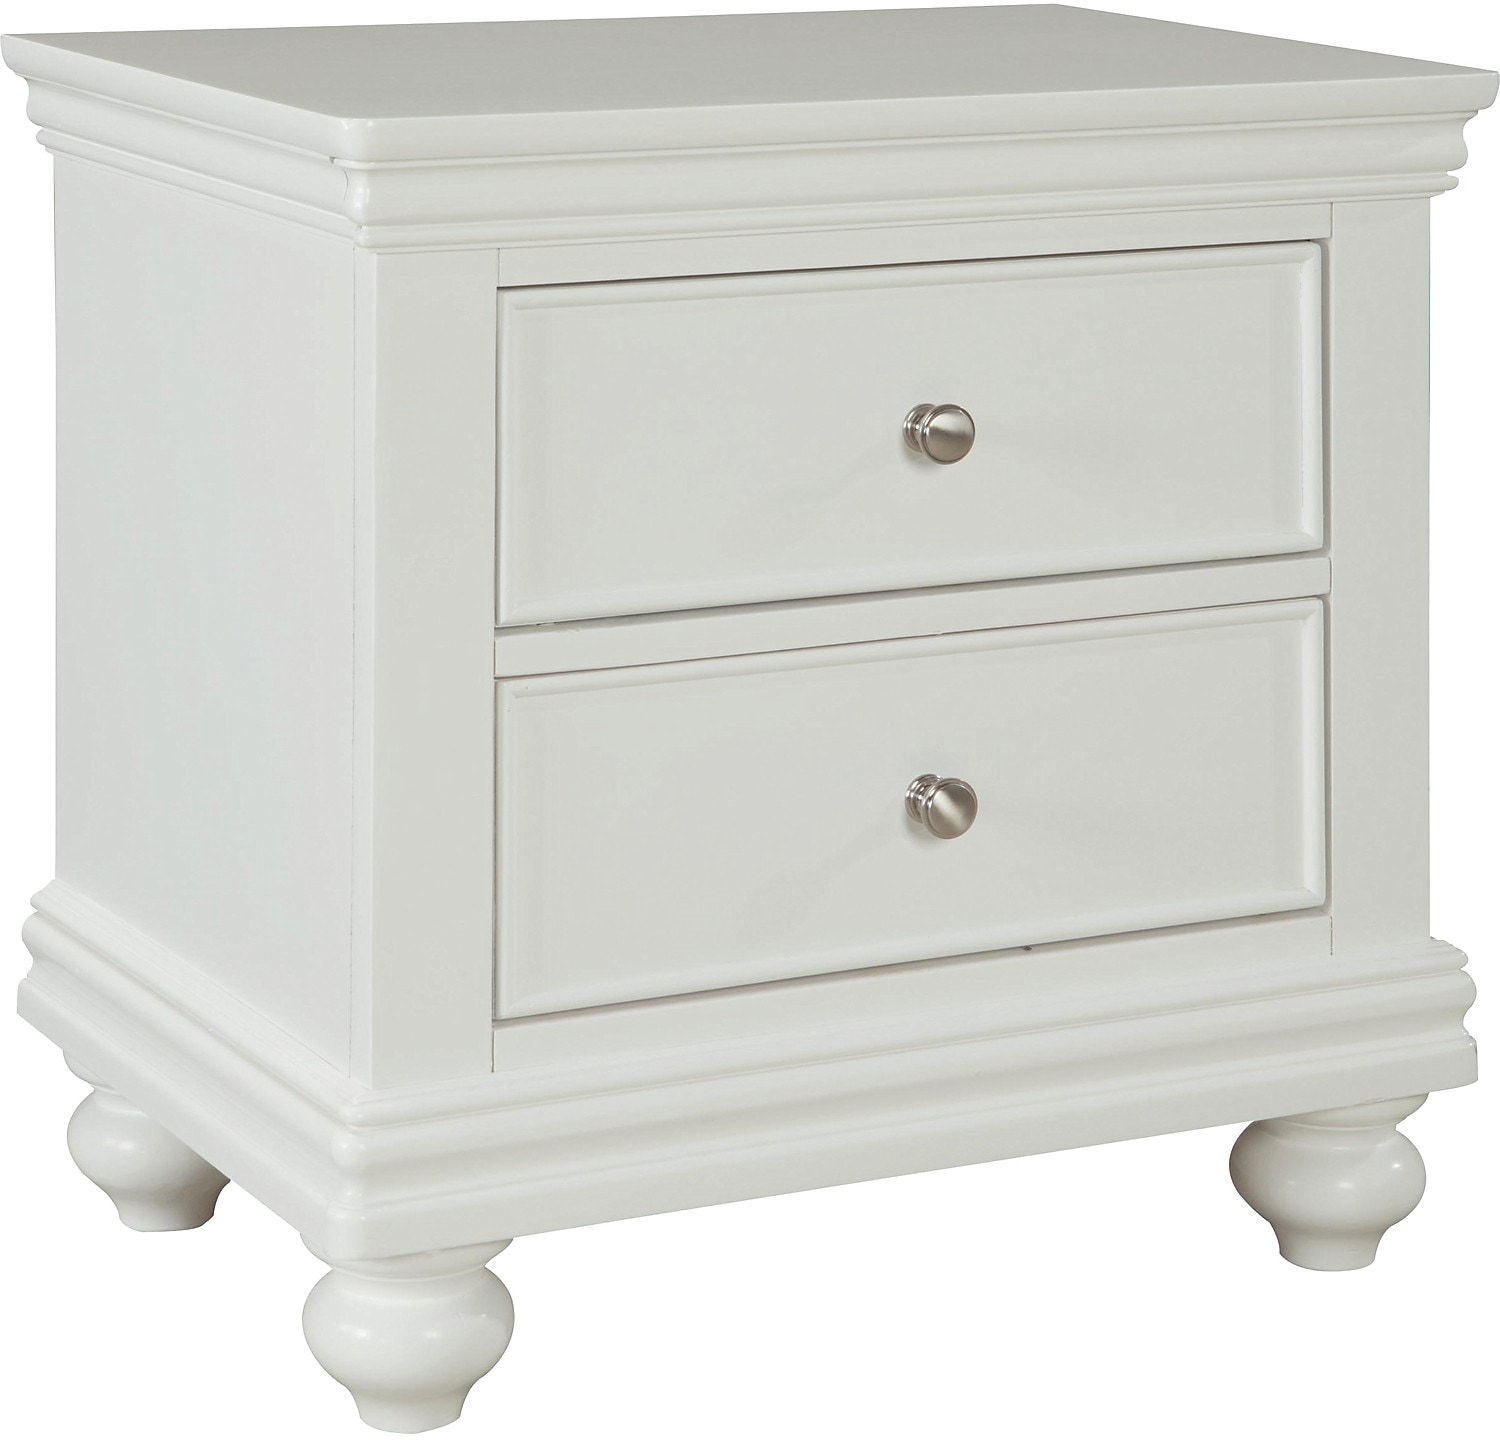 Bedroom Furniture - Bridgeport Nightstand – White